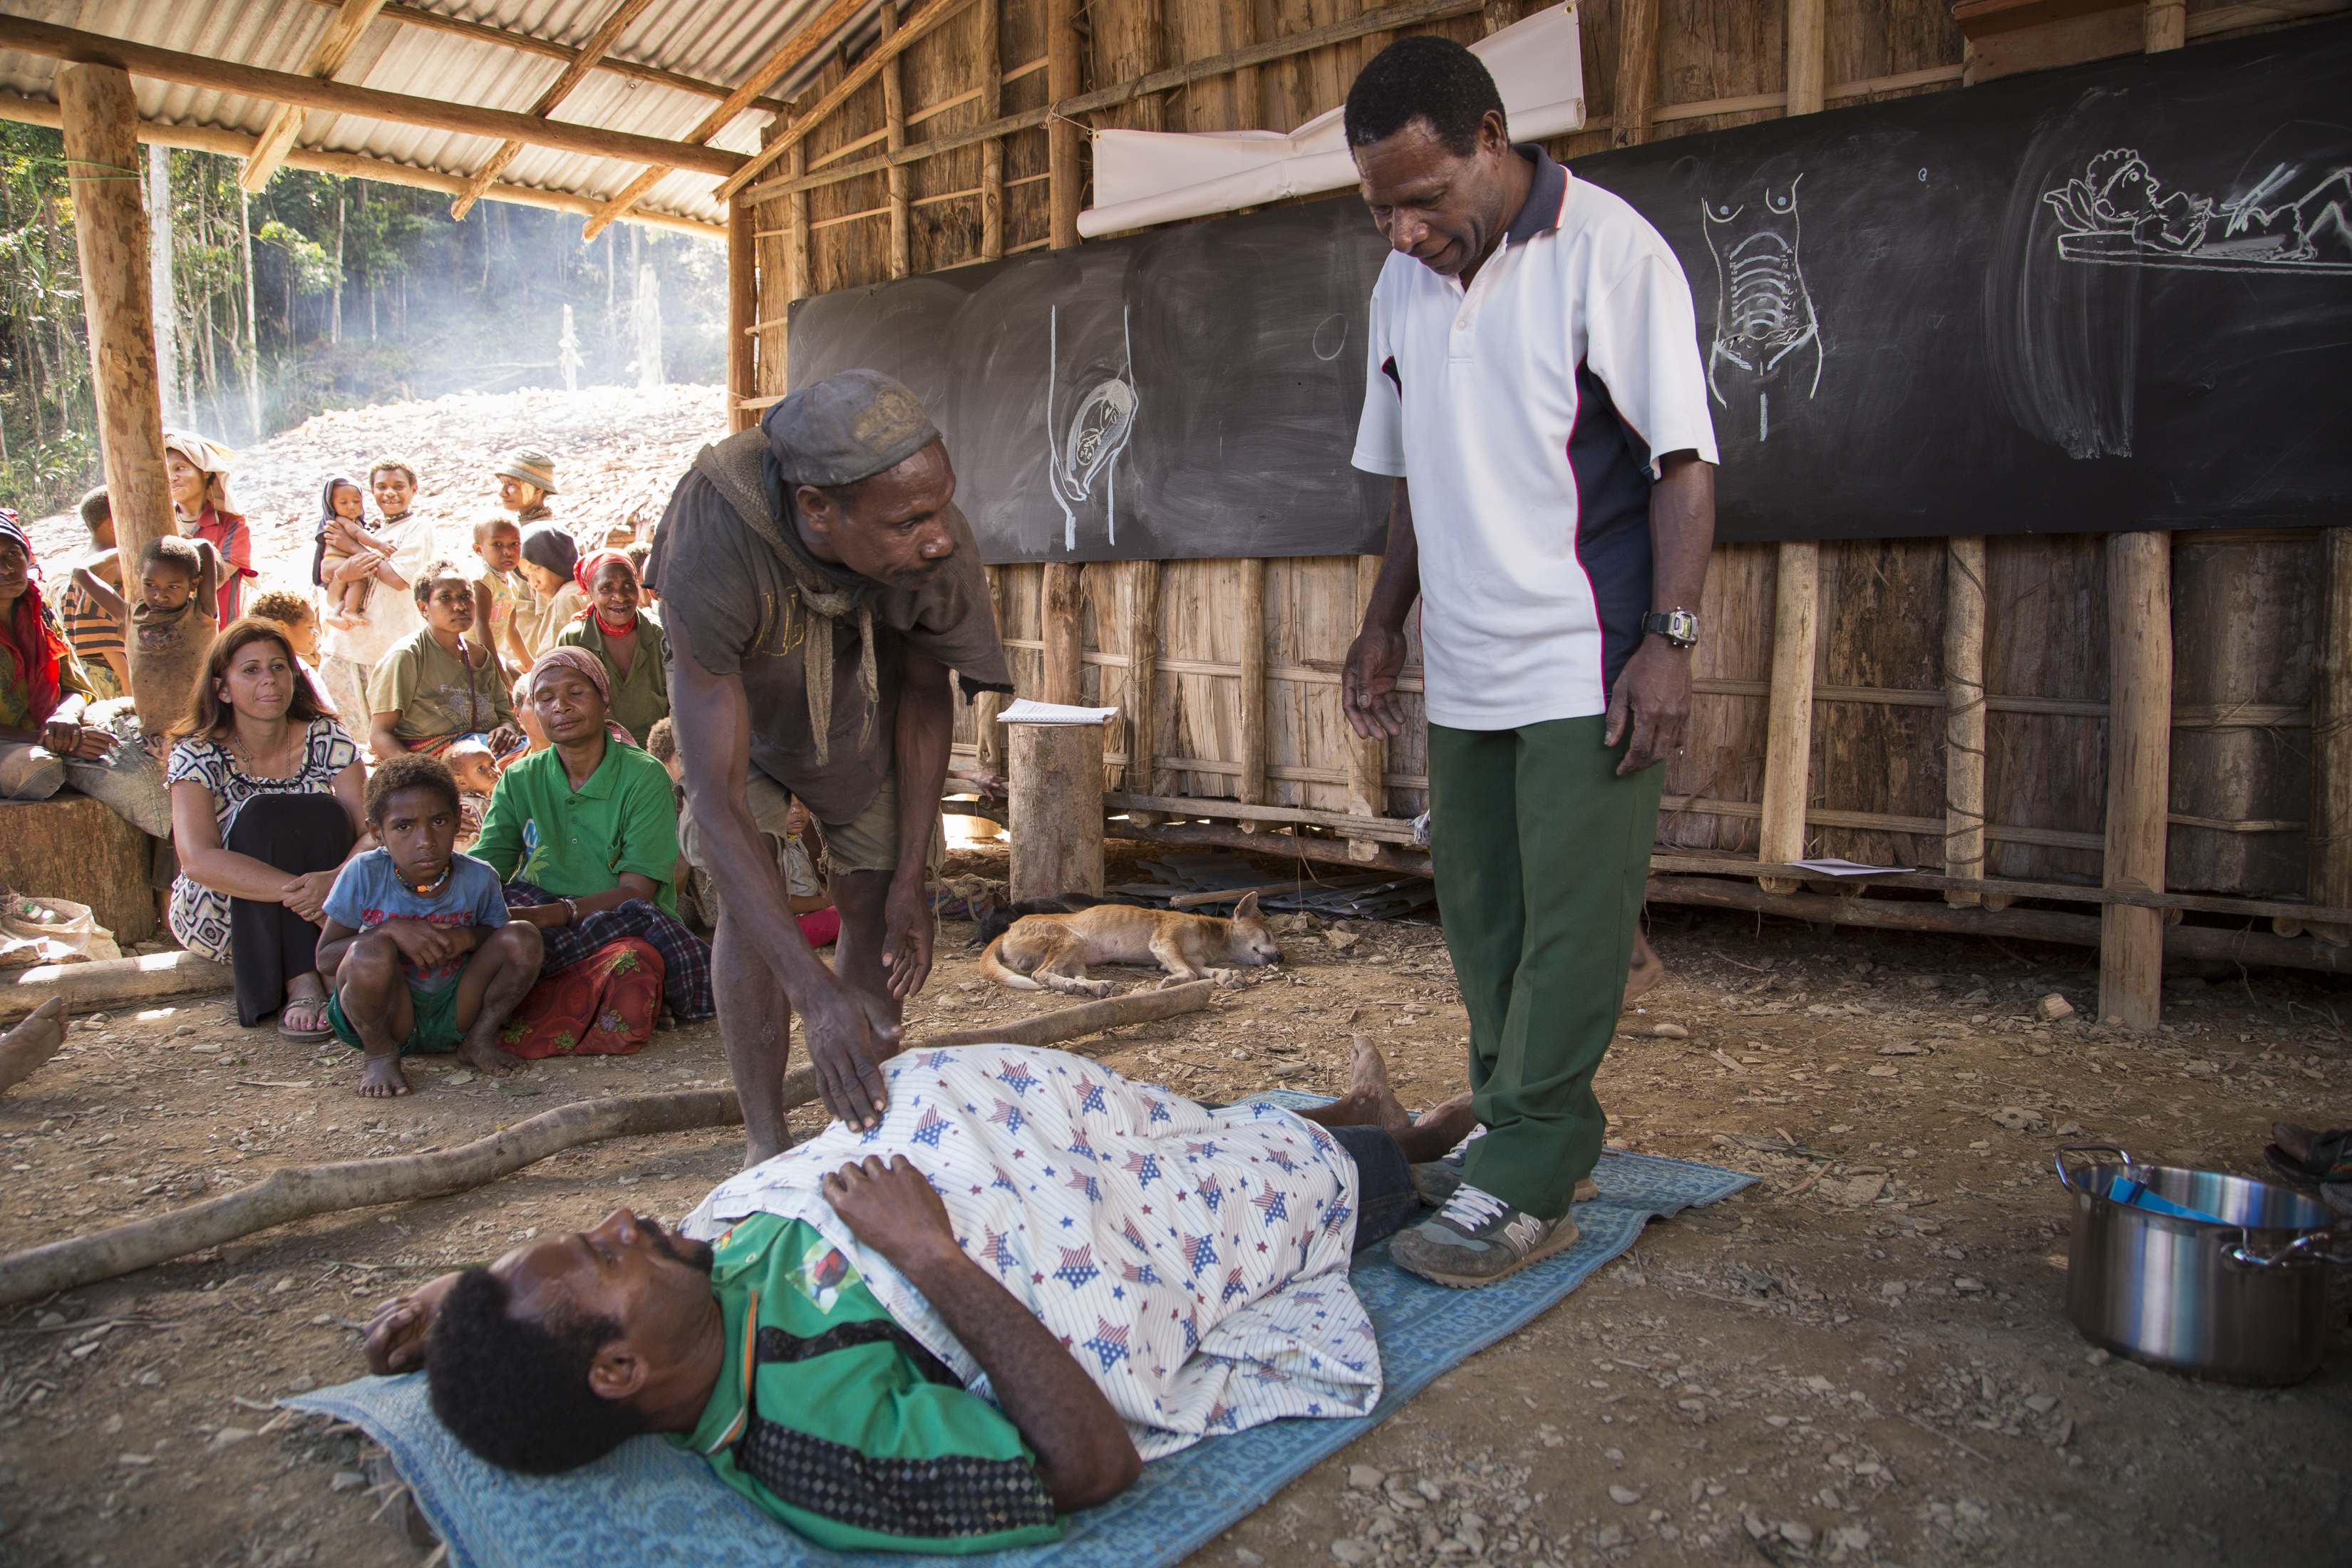 Hewa men learned how to assist their wives during childbirth and help care for newborns.